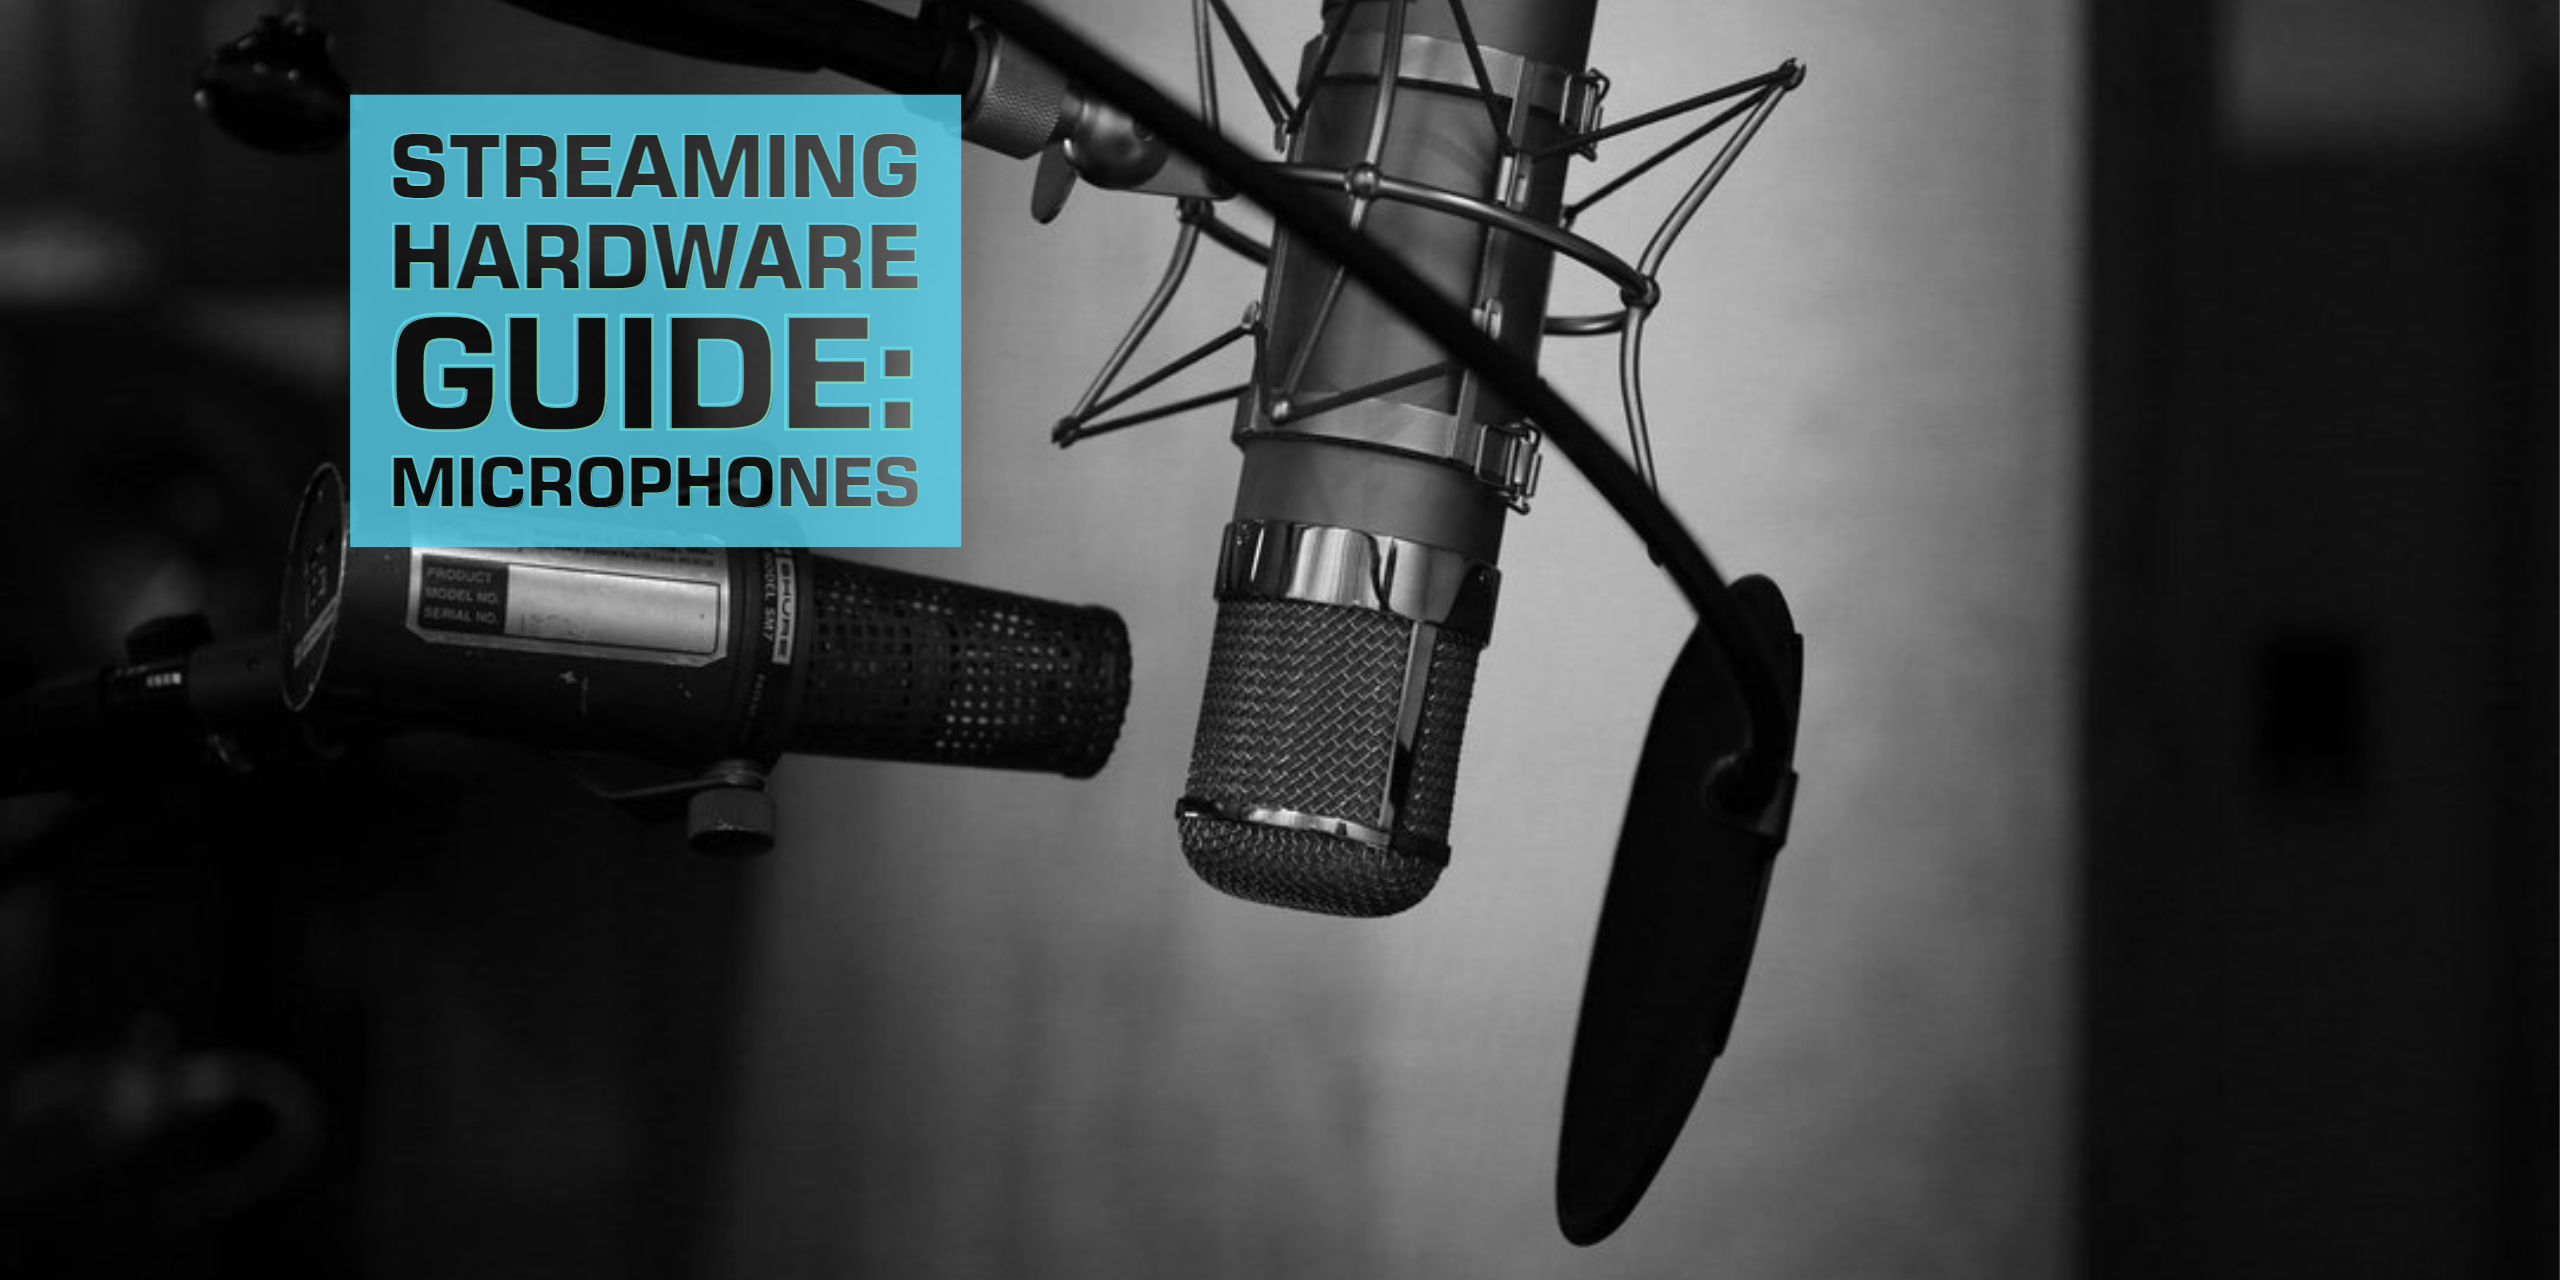 Casino Streaming Hardware Guide: Streaming Microphones main